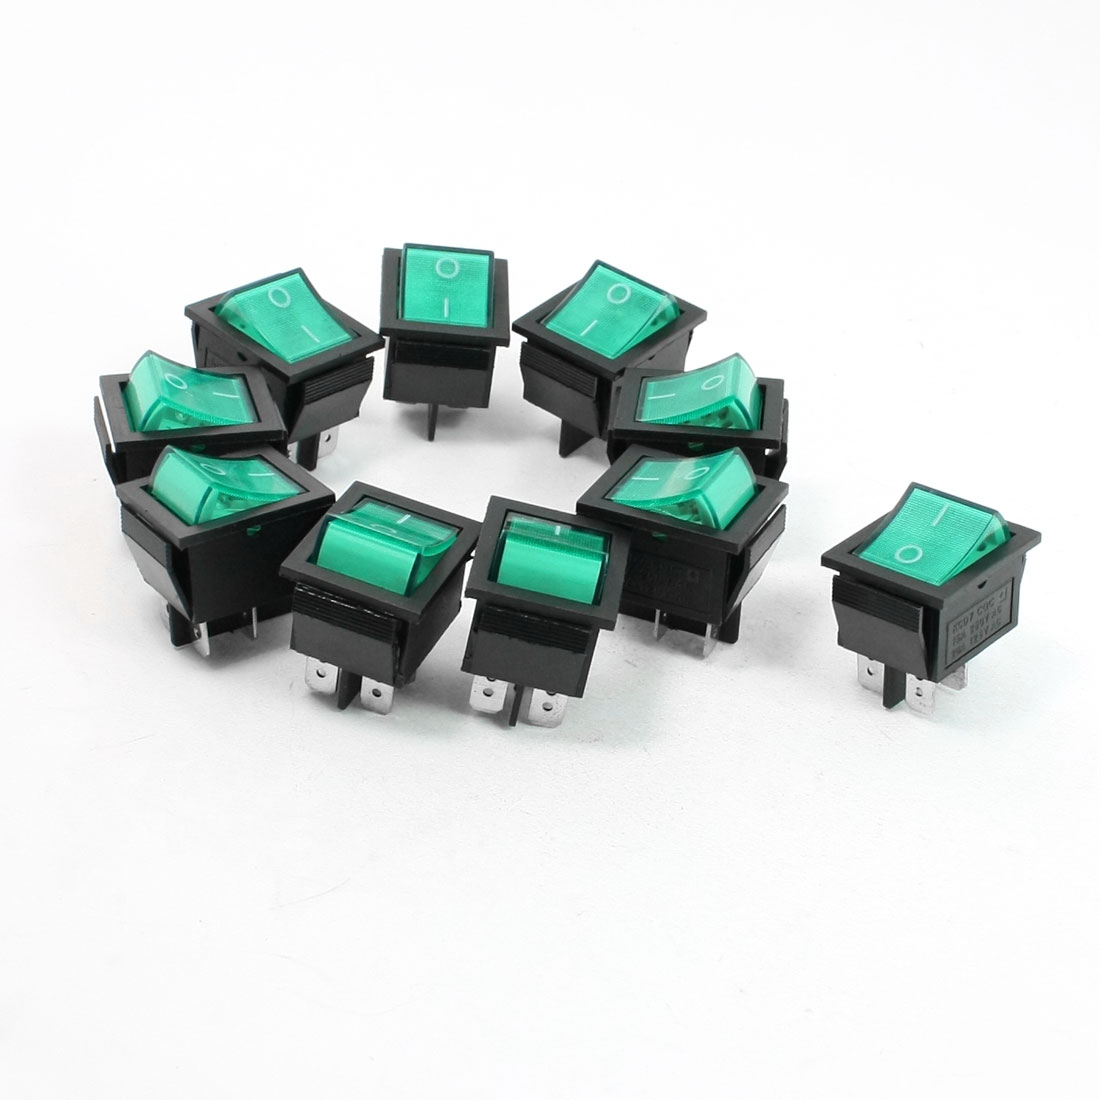 Green Neon Light DPST ON/OFF Snap in Rocker Switch AC 10A 250V/20A 125V 10 Pcs